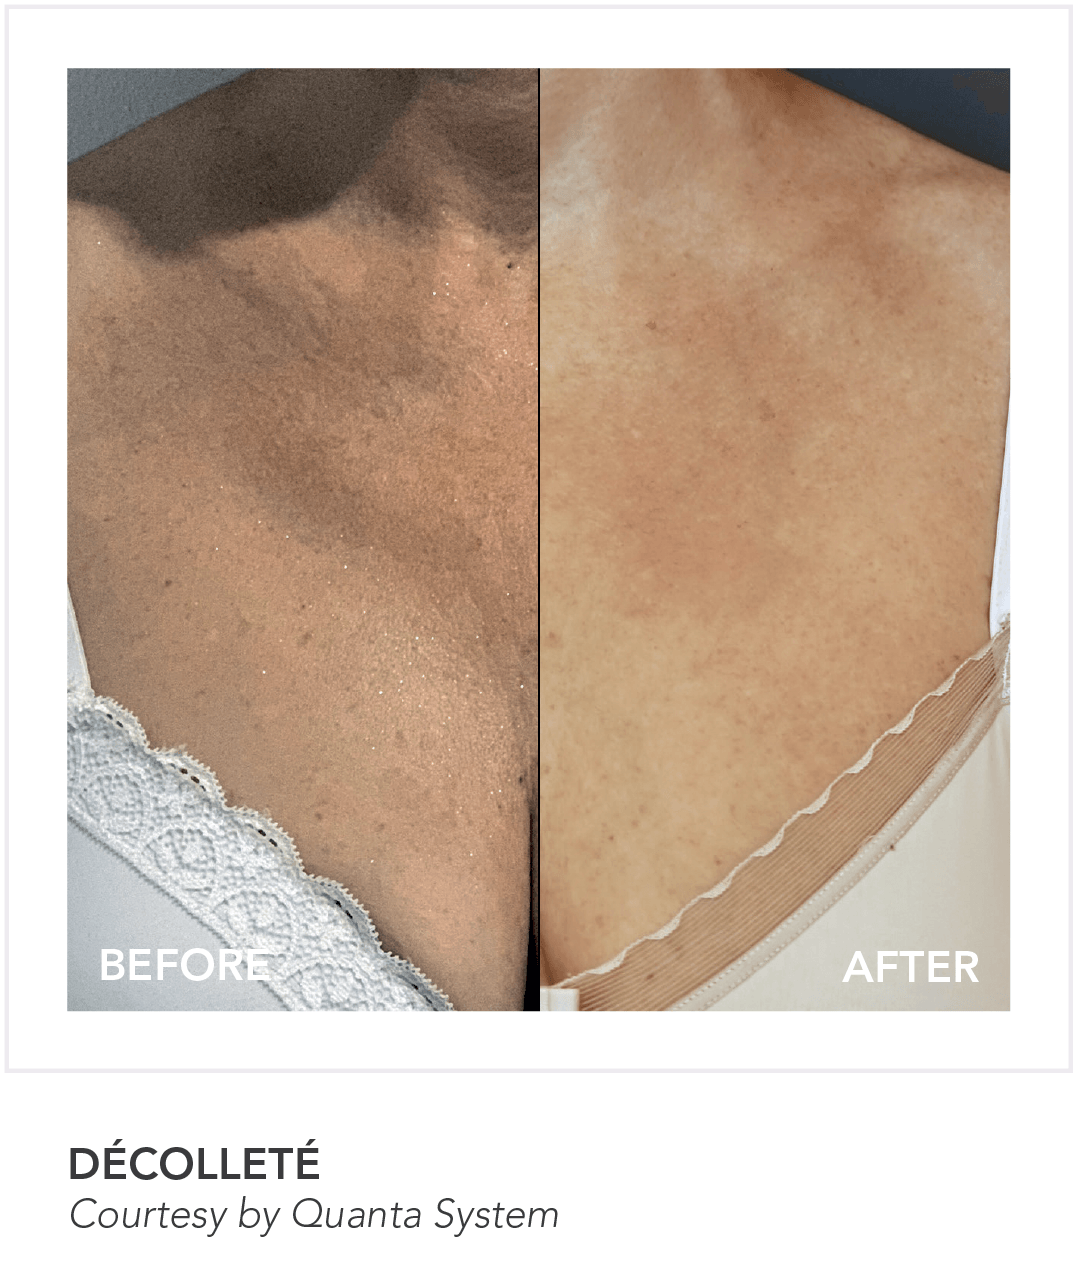 Before & After Decollete Skin App Treatment